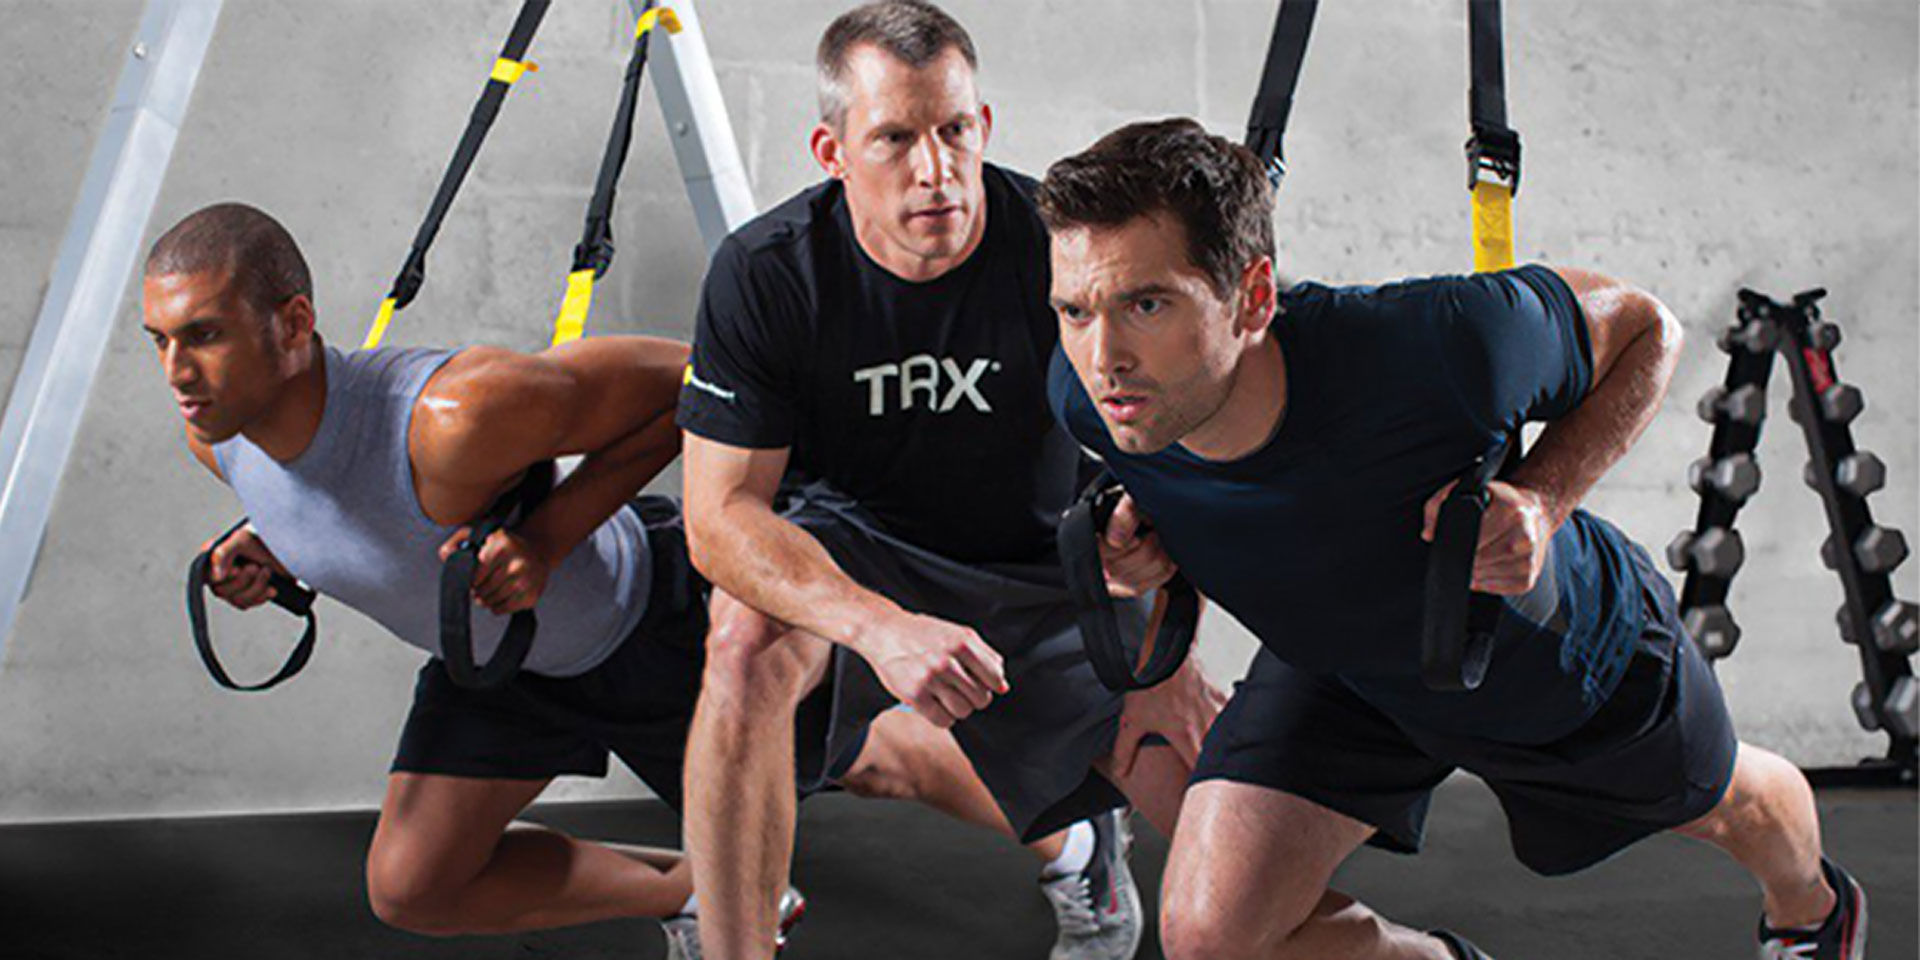 TRX GTC - Advanced Training Course